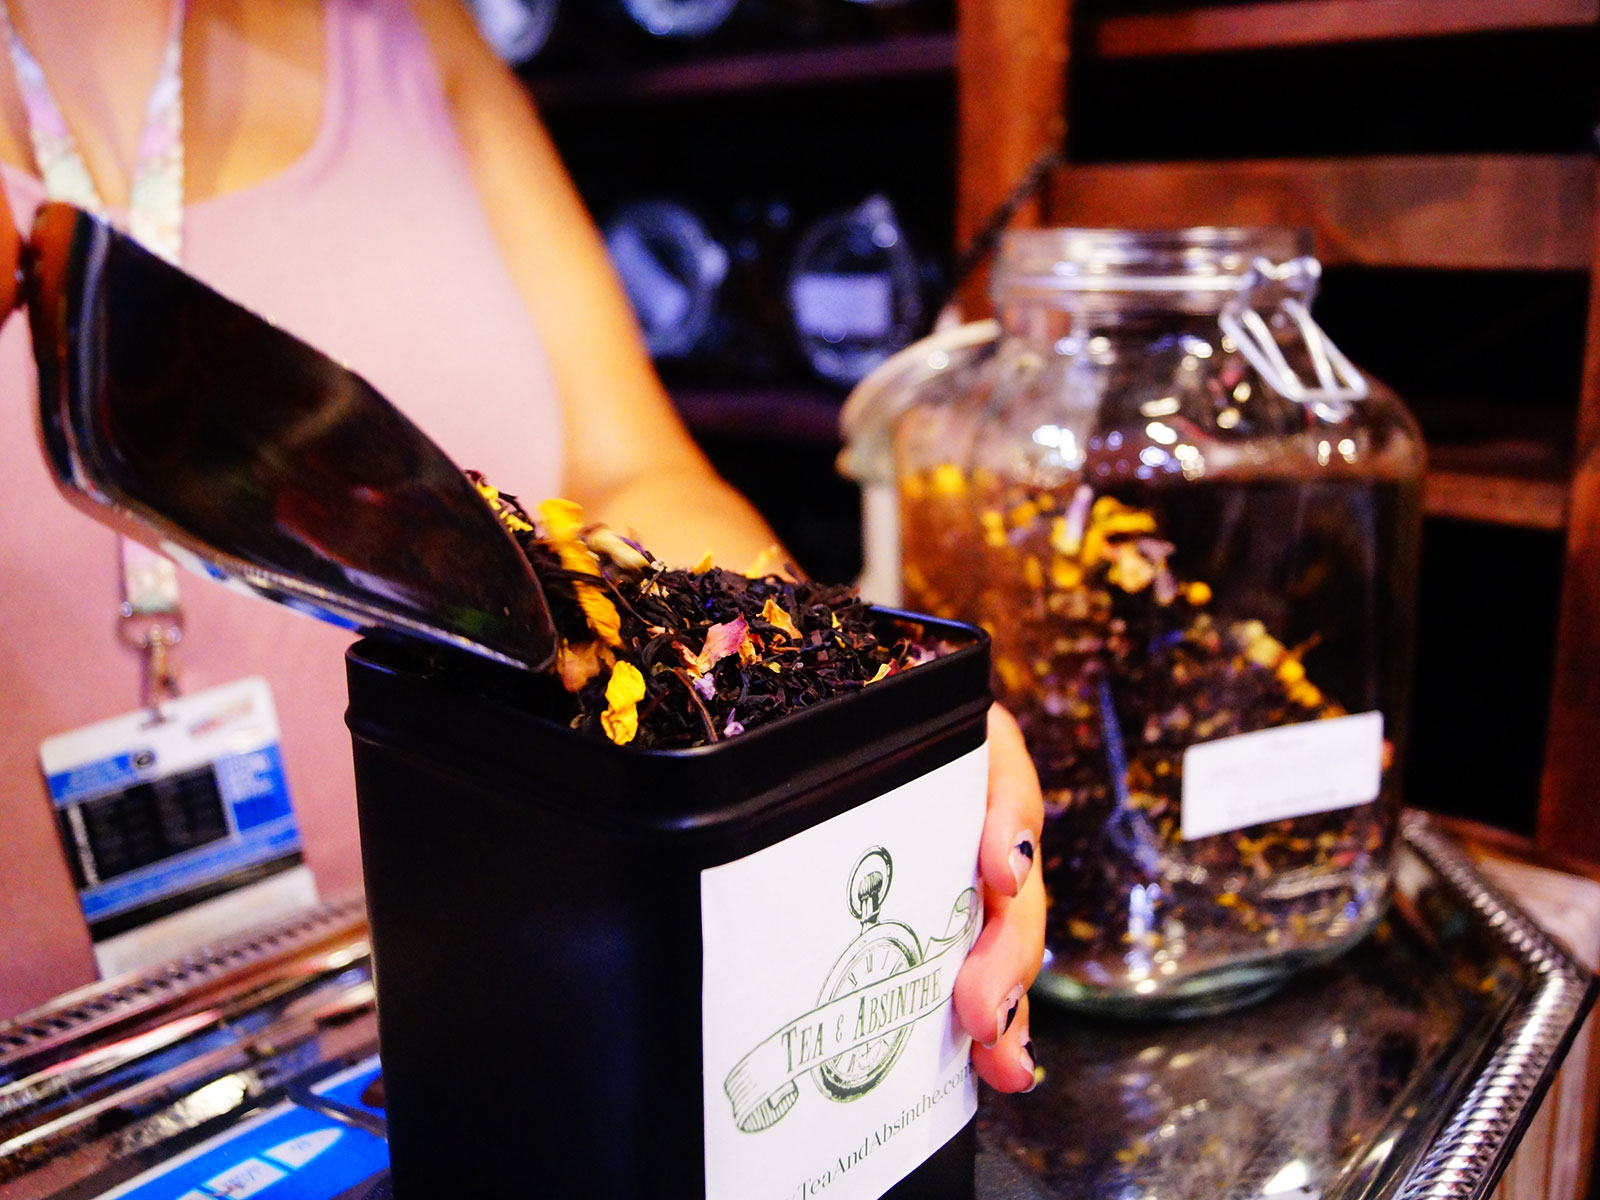 EC: This Tea Maker's Blends Are Inspired by Harry Potter and Star Trek